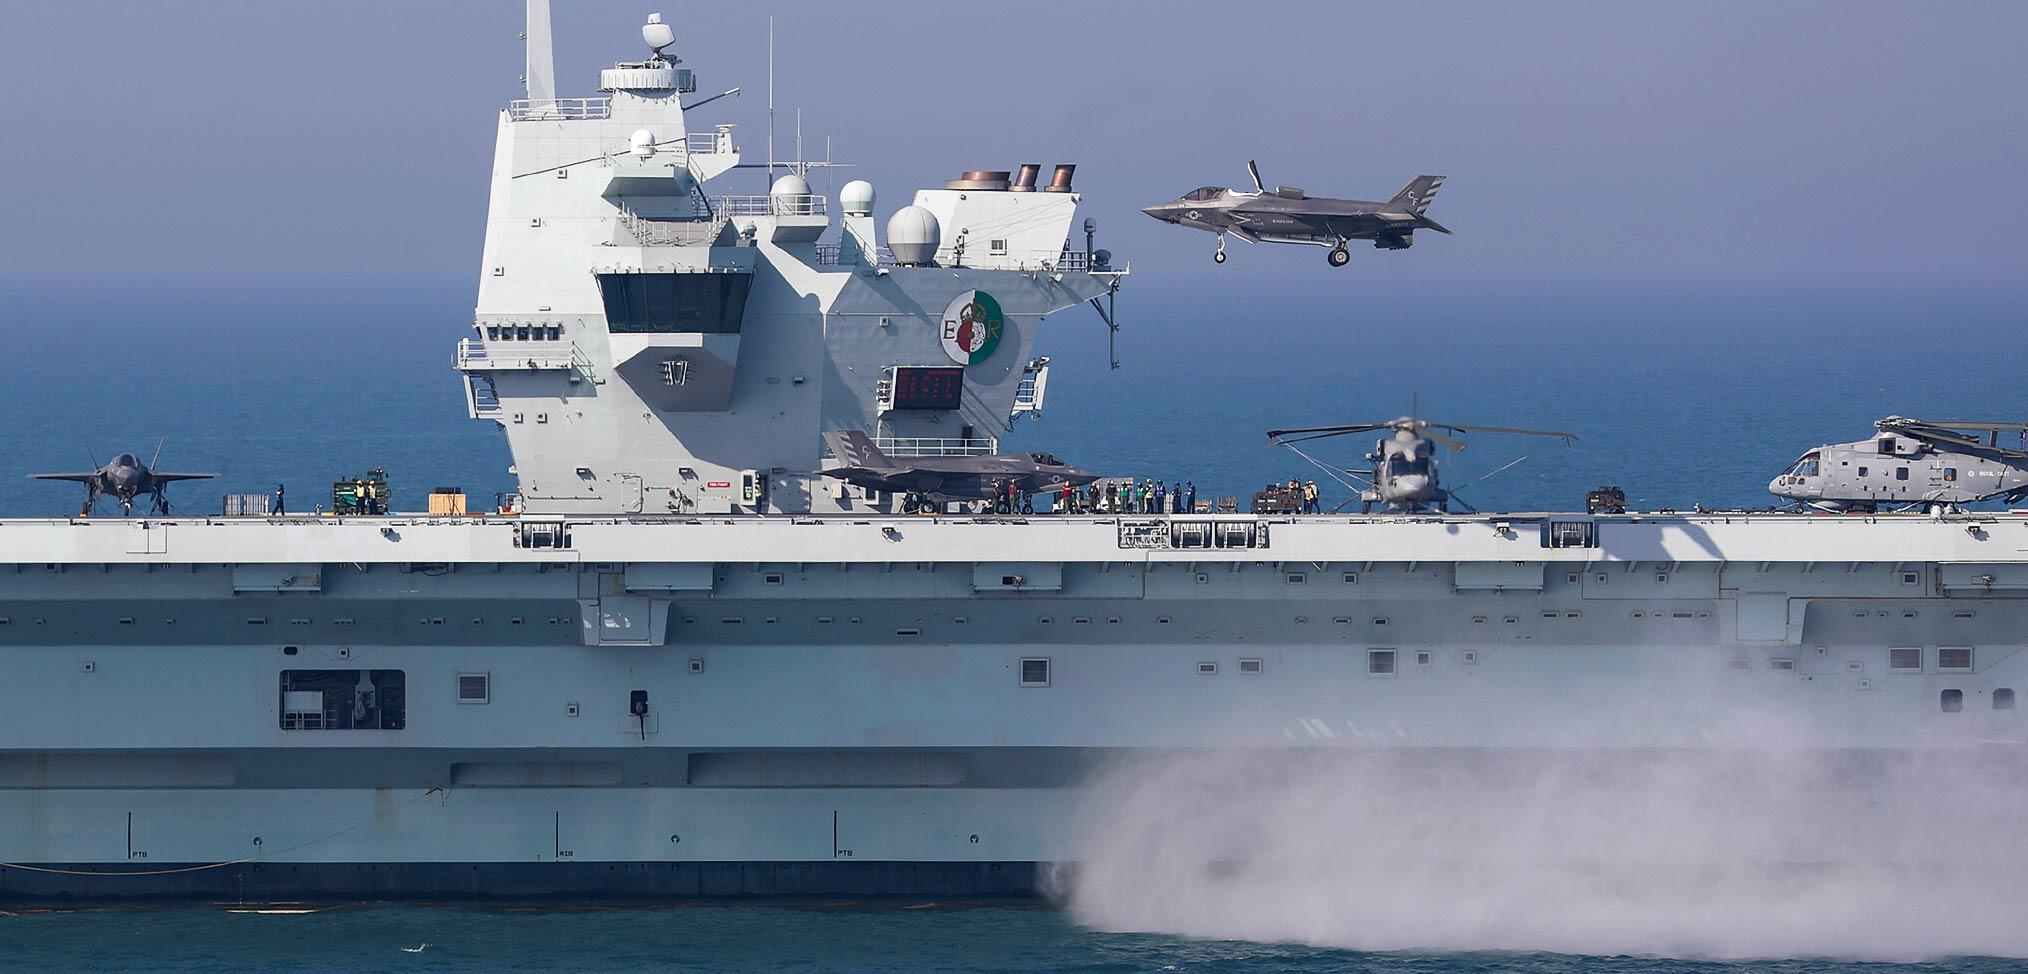 US Marine Corps reports successful integration exercise onboard HMS Queen Elizabeth